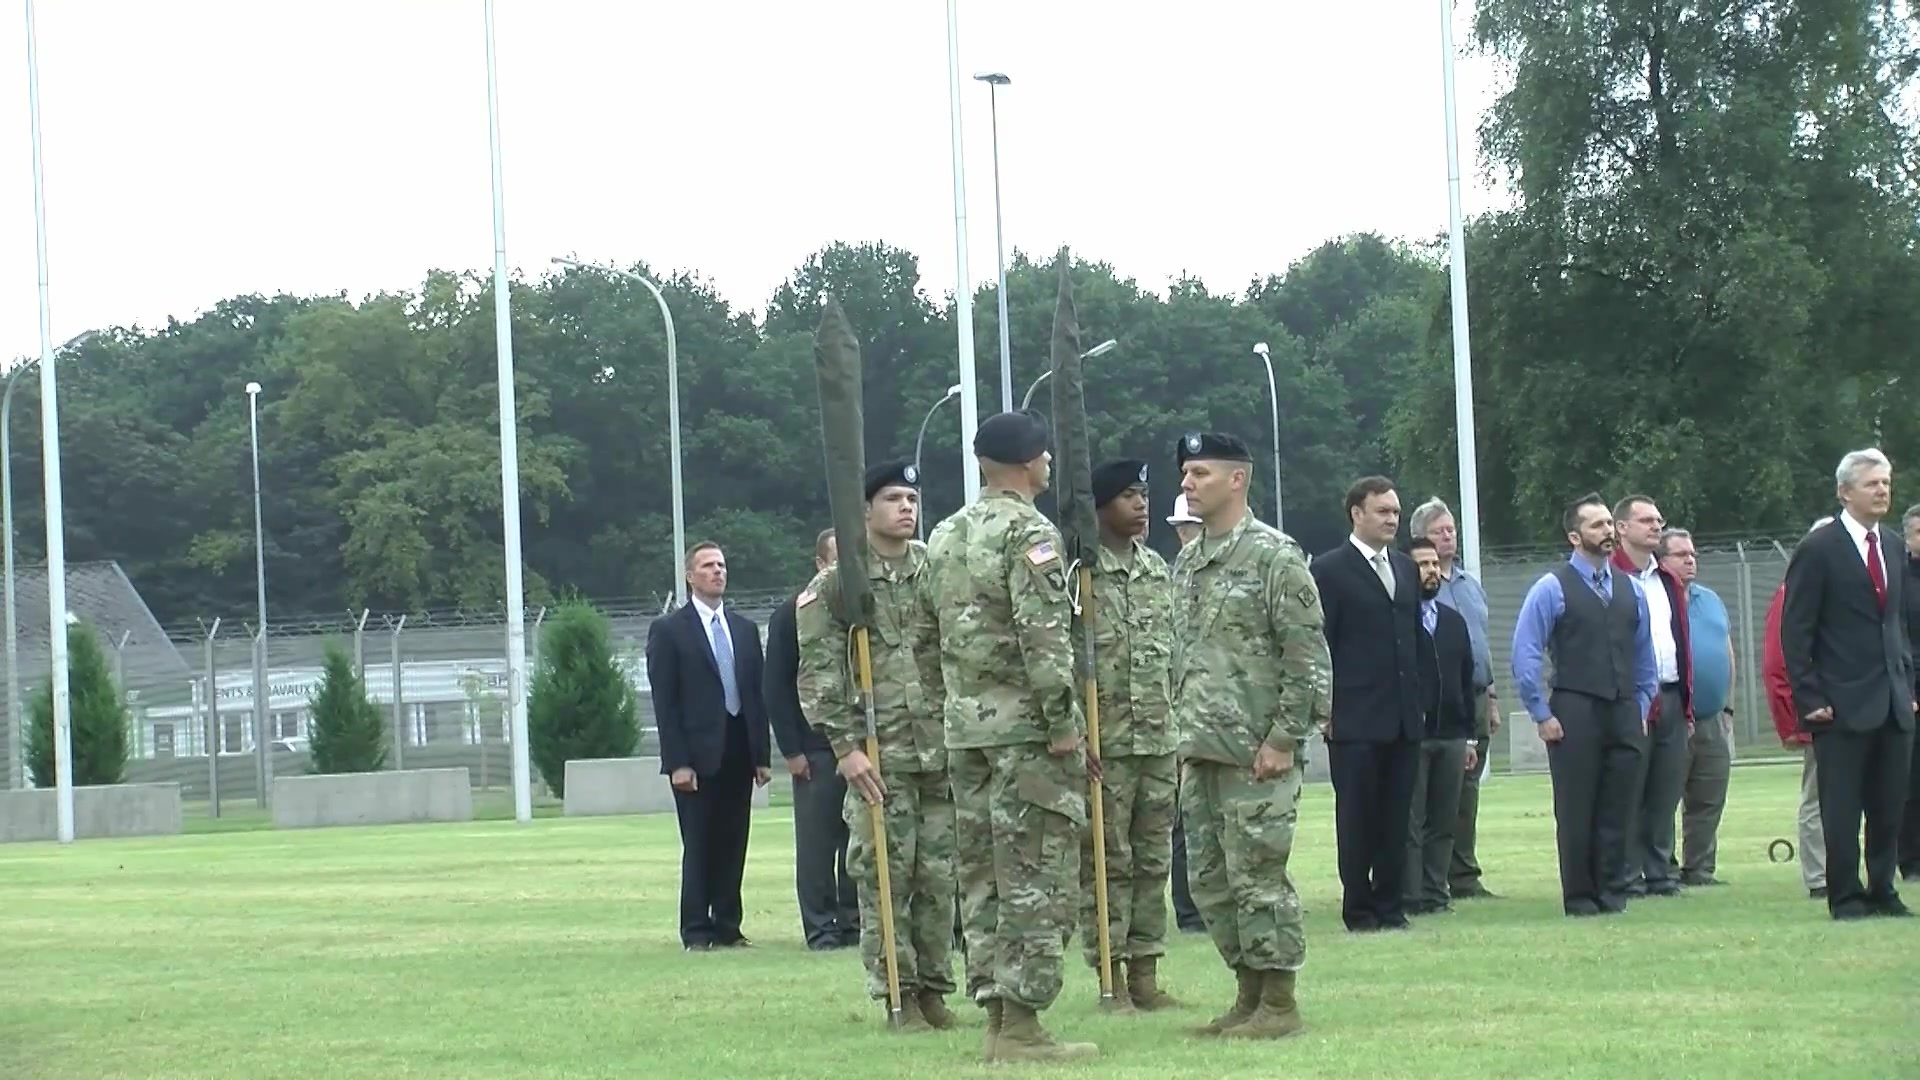 Army color casing ceremony script - Dvids Video Reflagging Ceremony 128th Signal Company Inactivation Network Enterprise Center Belgium Activation